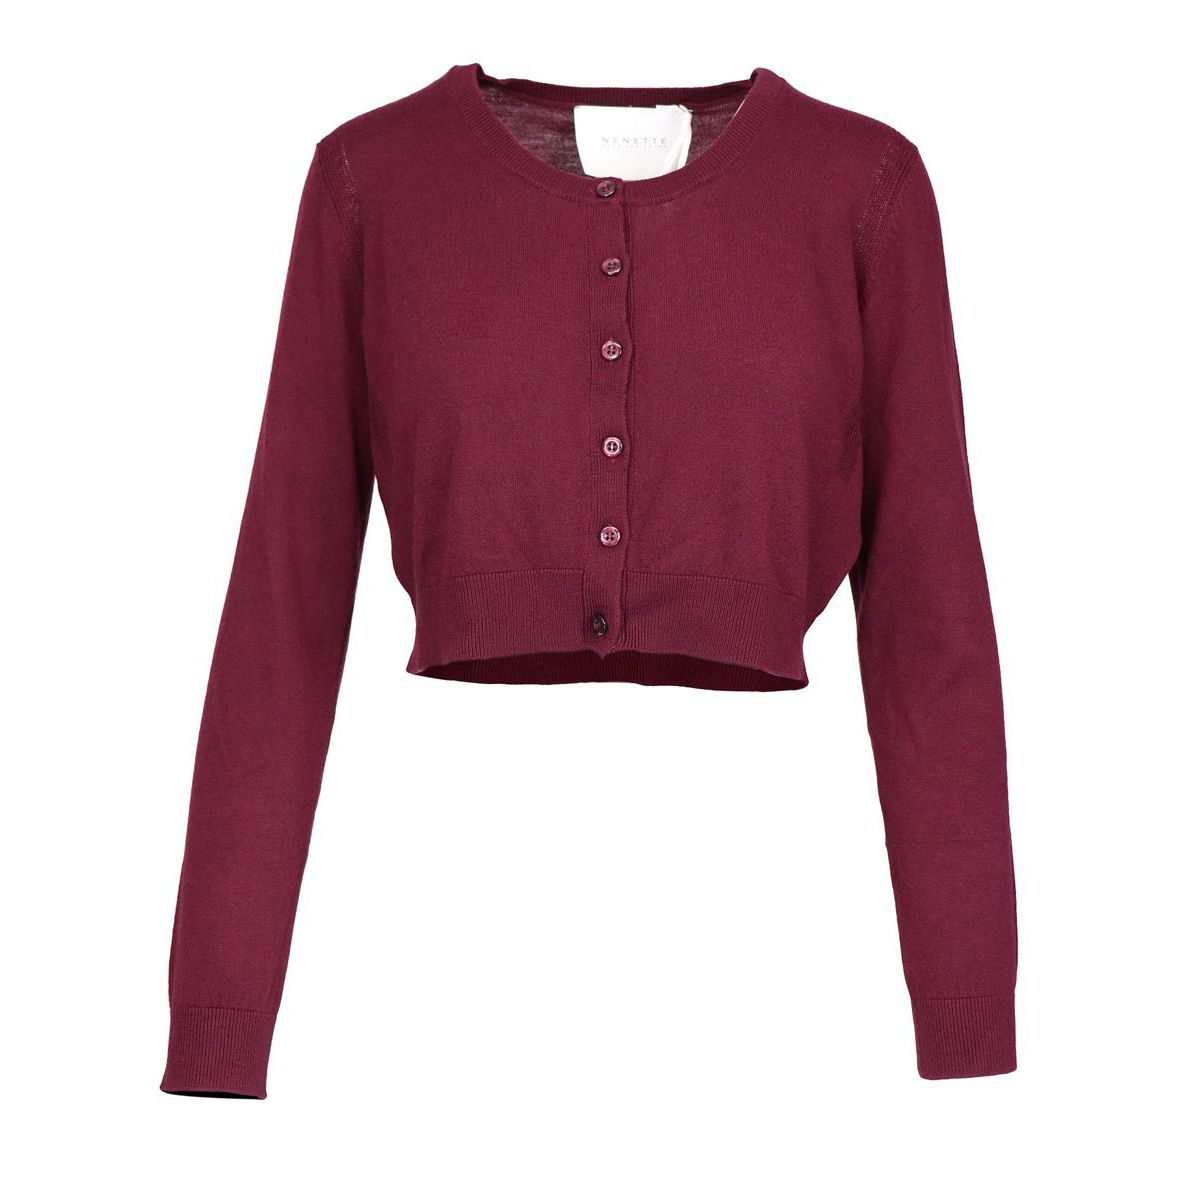 Crew-neck cardigan in viscose and wool blend with buttons Bordeaux Nenette